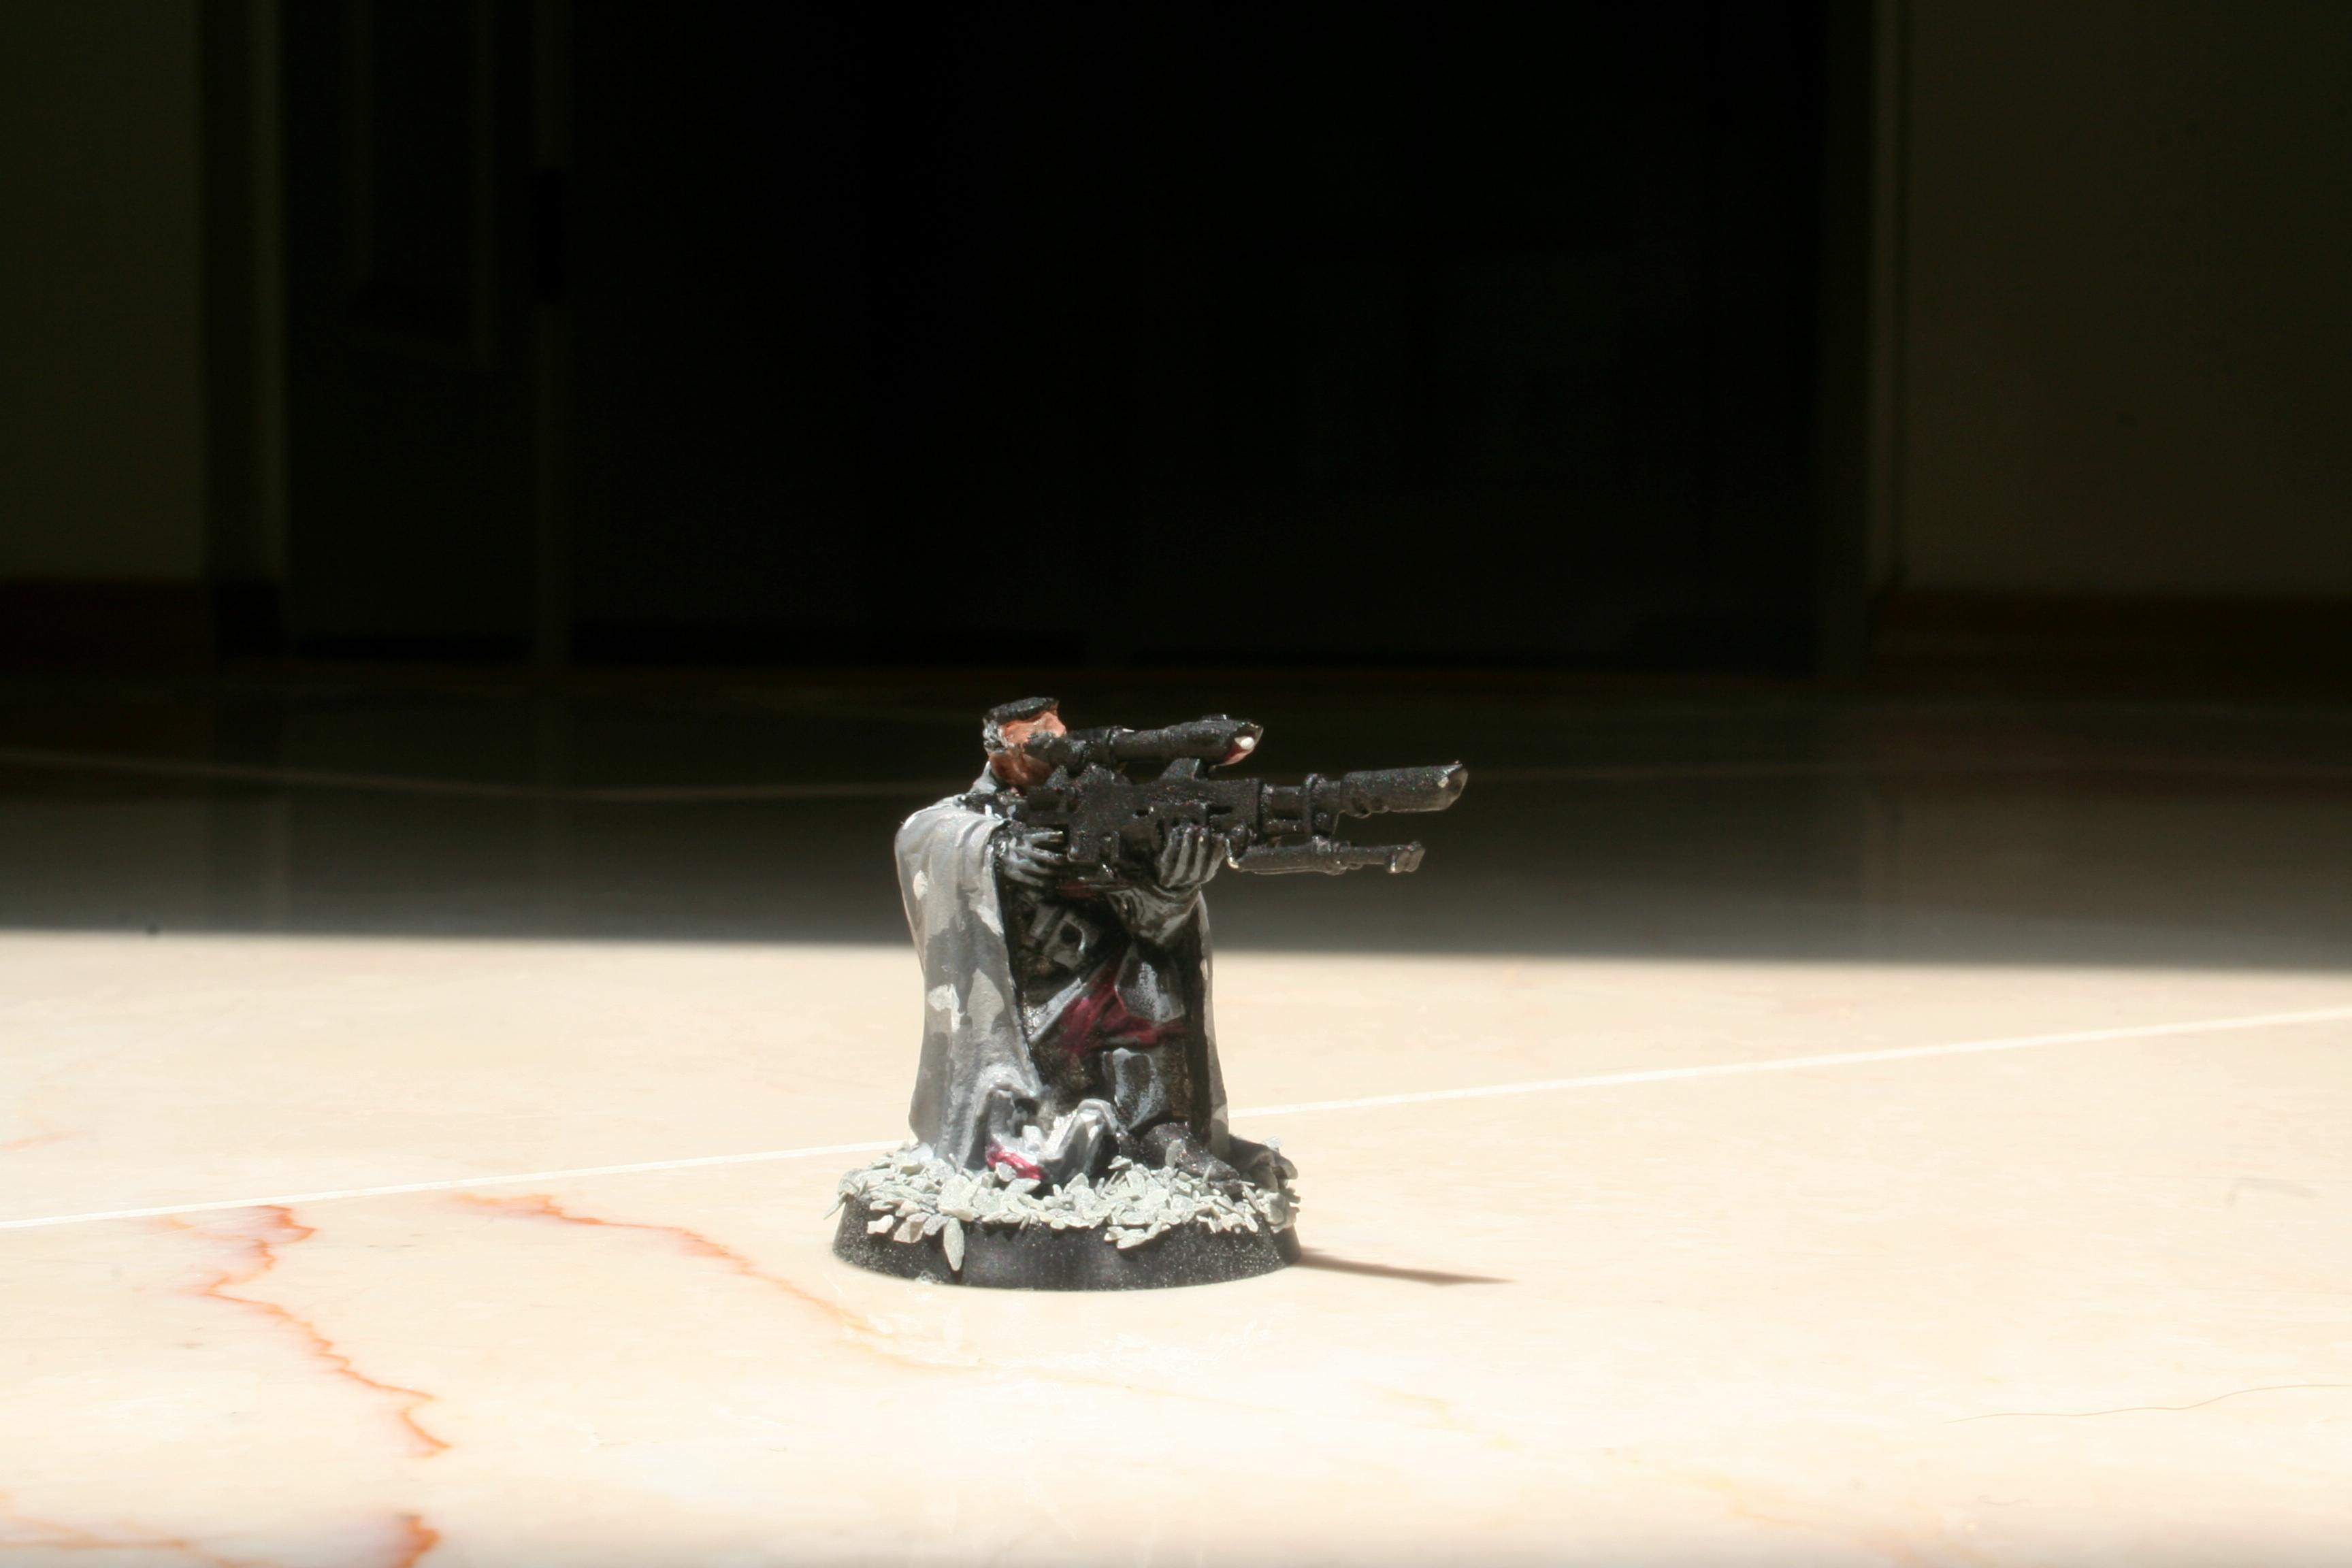 Cadian Sniper, Cadians, Imperial, Imperial Army, Urban Camo